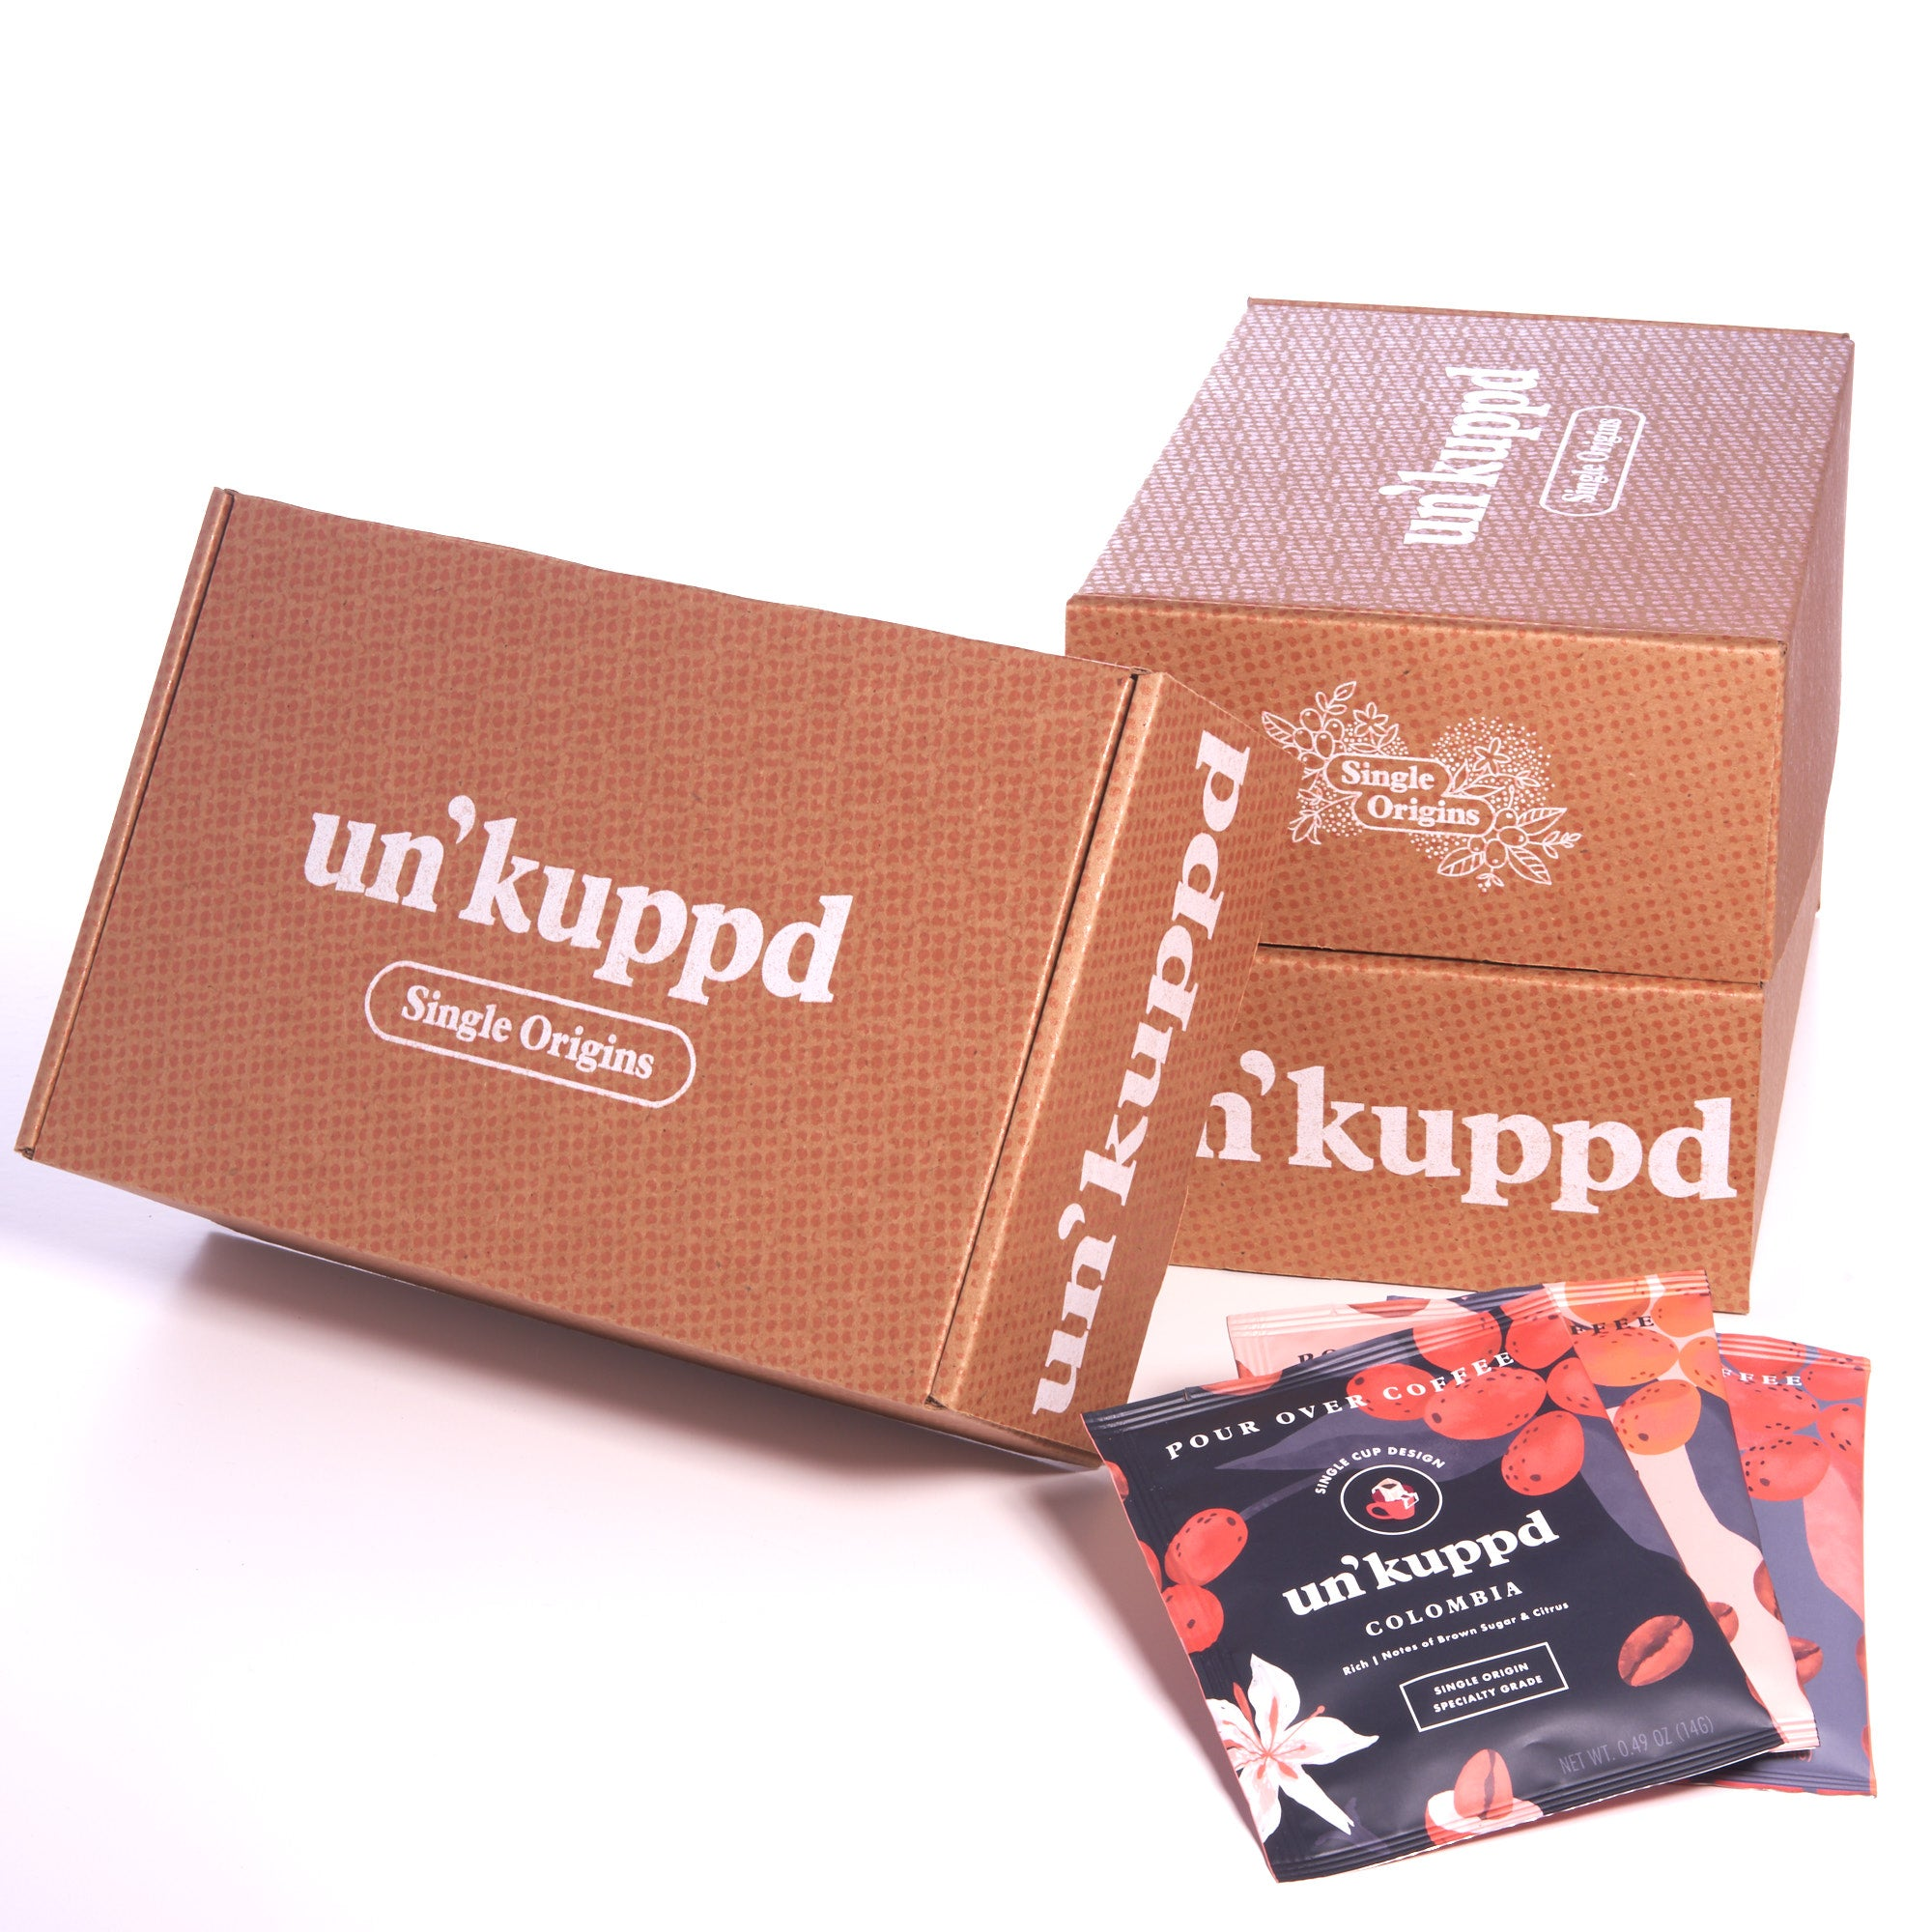 Un'kuppd Single Origins 15 Pack (3 Month Gift Subscription)